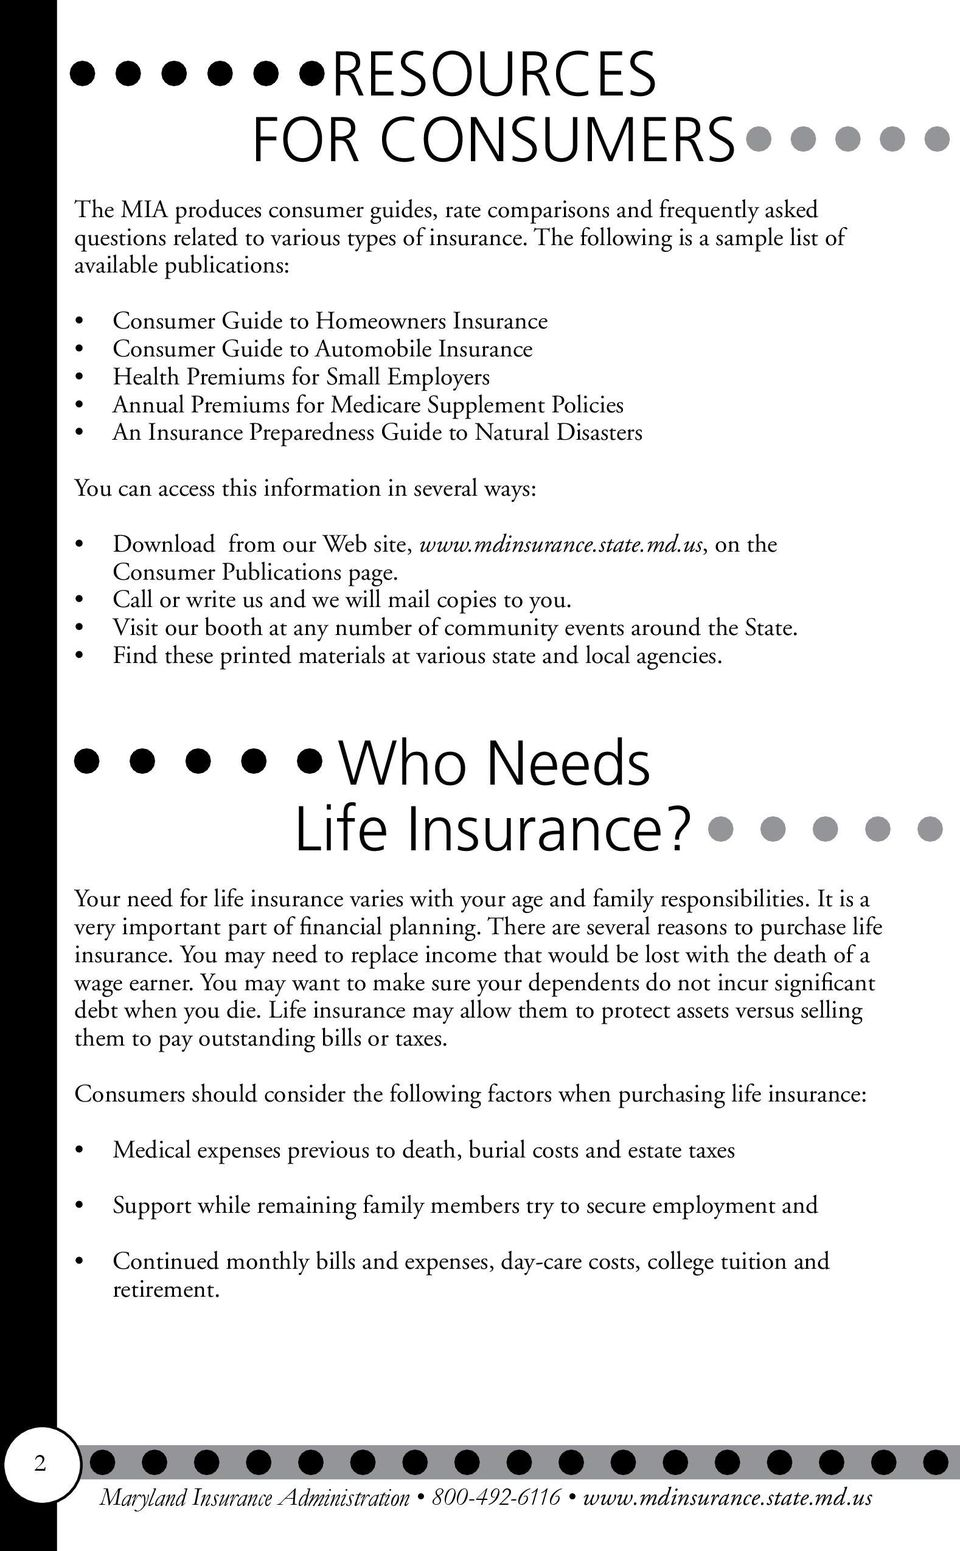 Medicare Supplement Policies An Insurance Preparedness Guide to Natural Disasters You can access this information in several ways: Download from our Web site, www.mdi